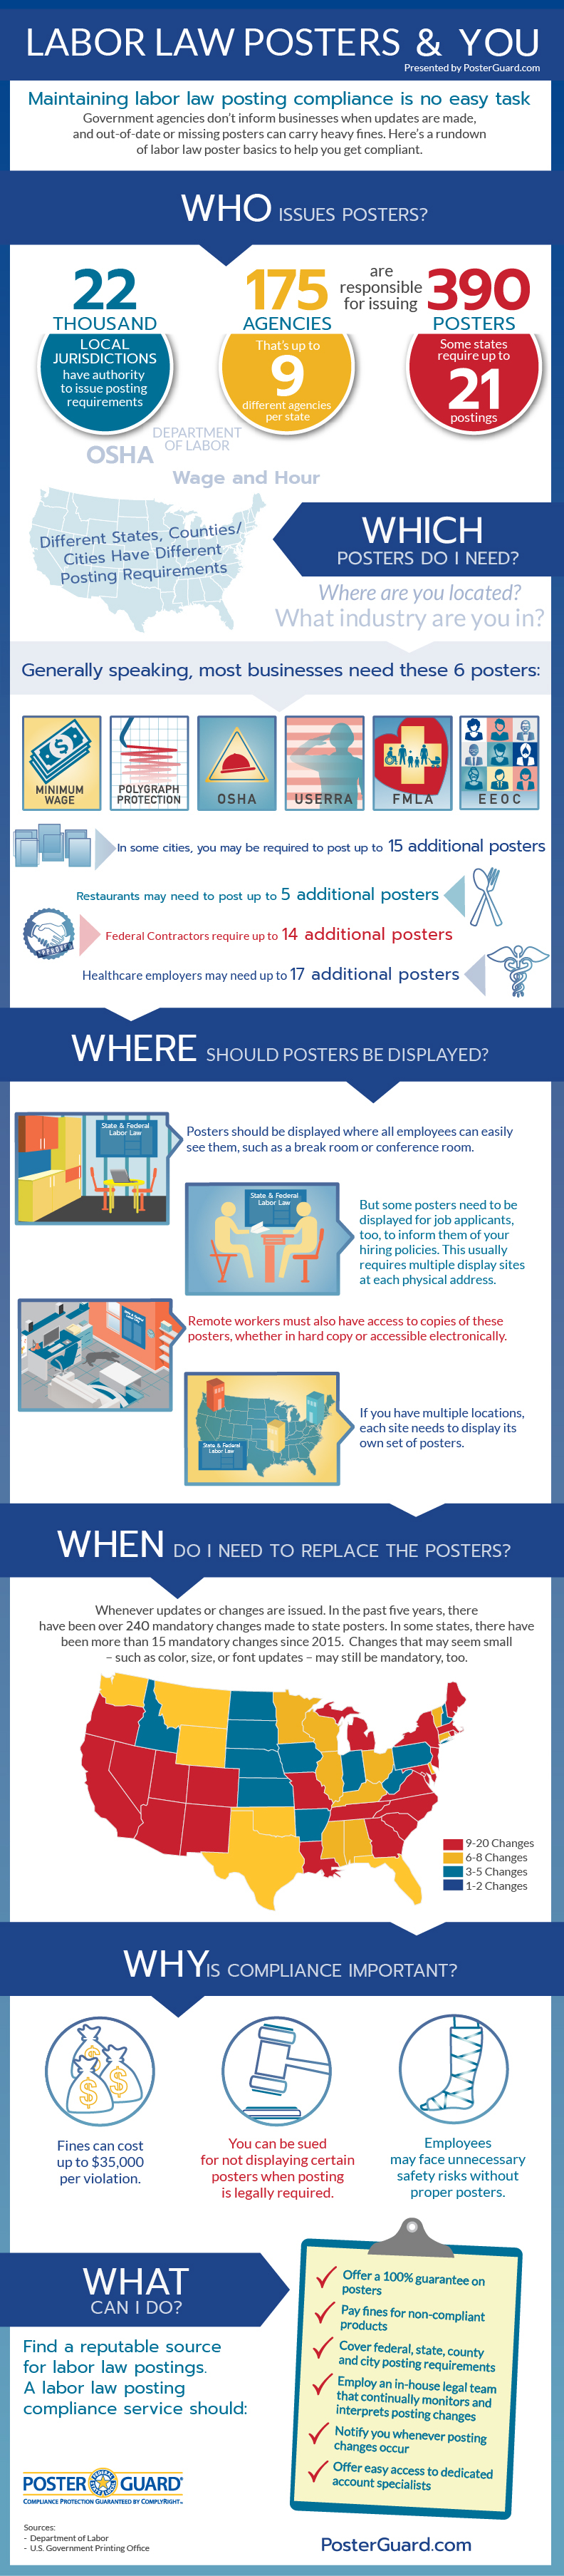 Infographic: Labor Law Posters and You